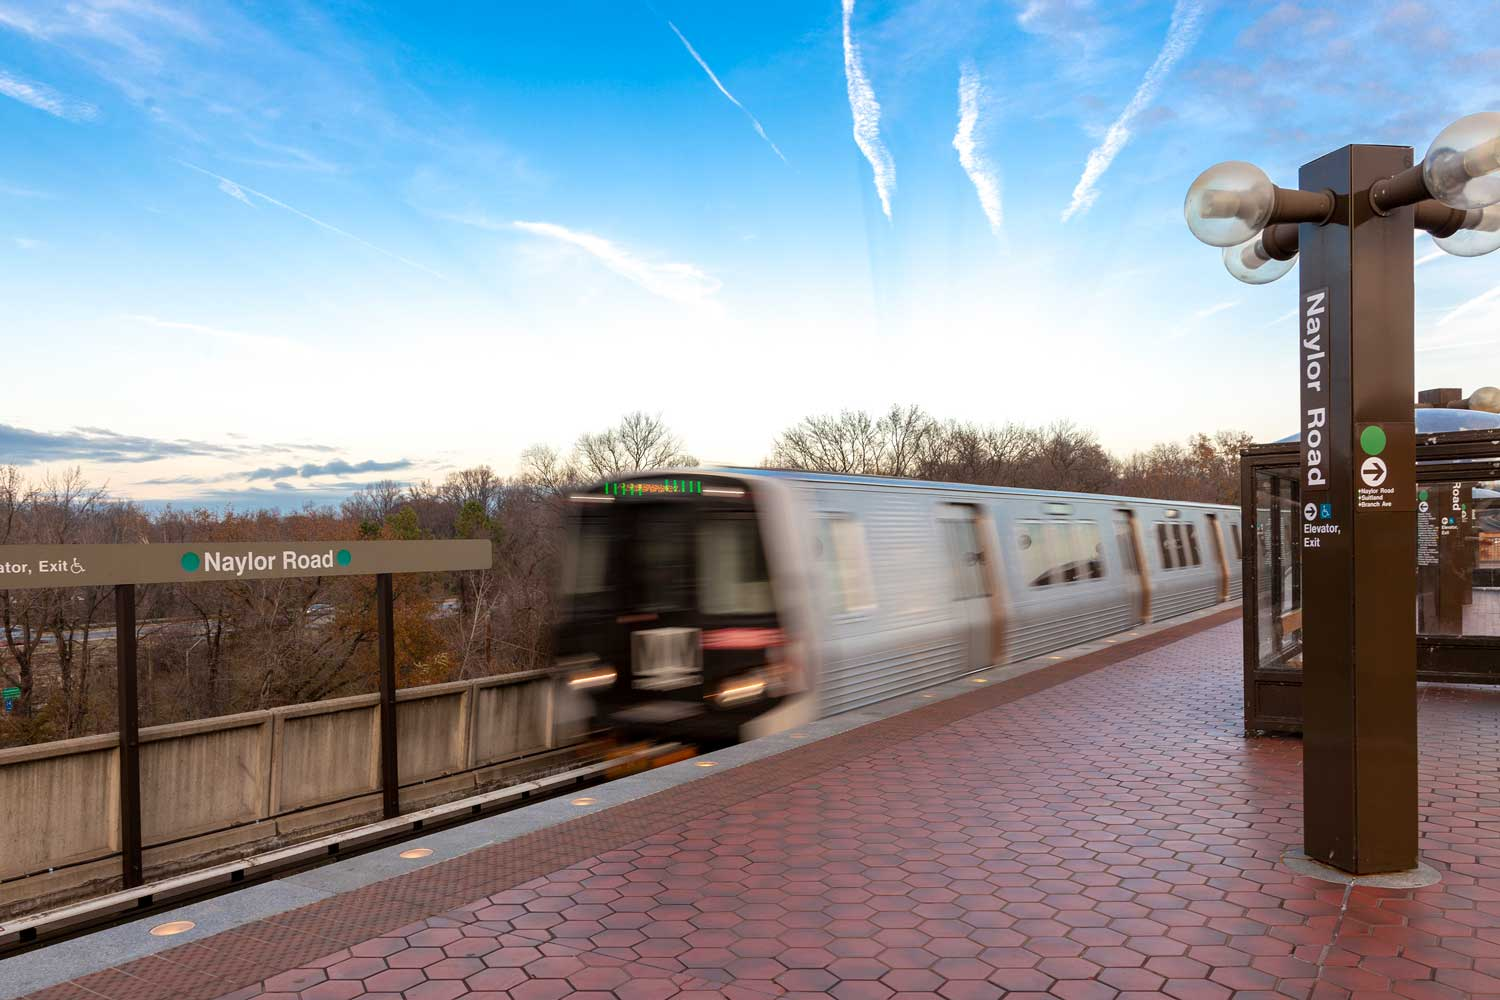 Walking distance to Naylor Road Metro station in Temple Hills, MD